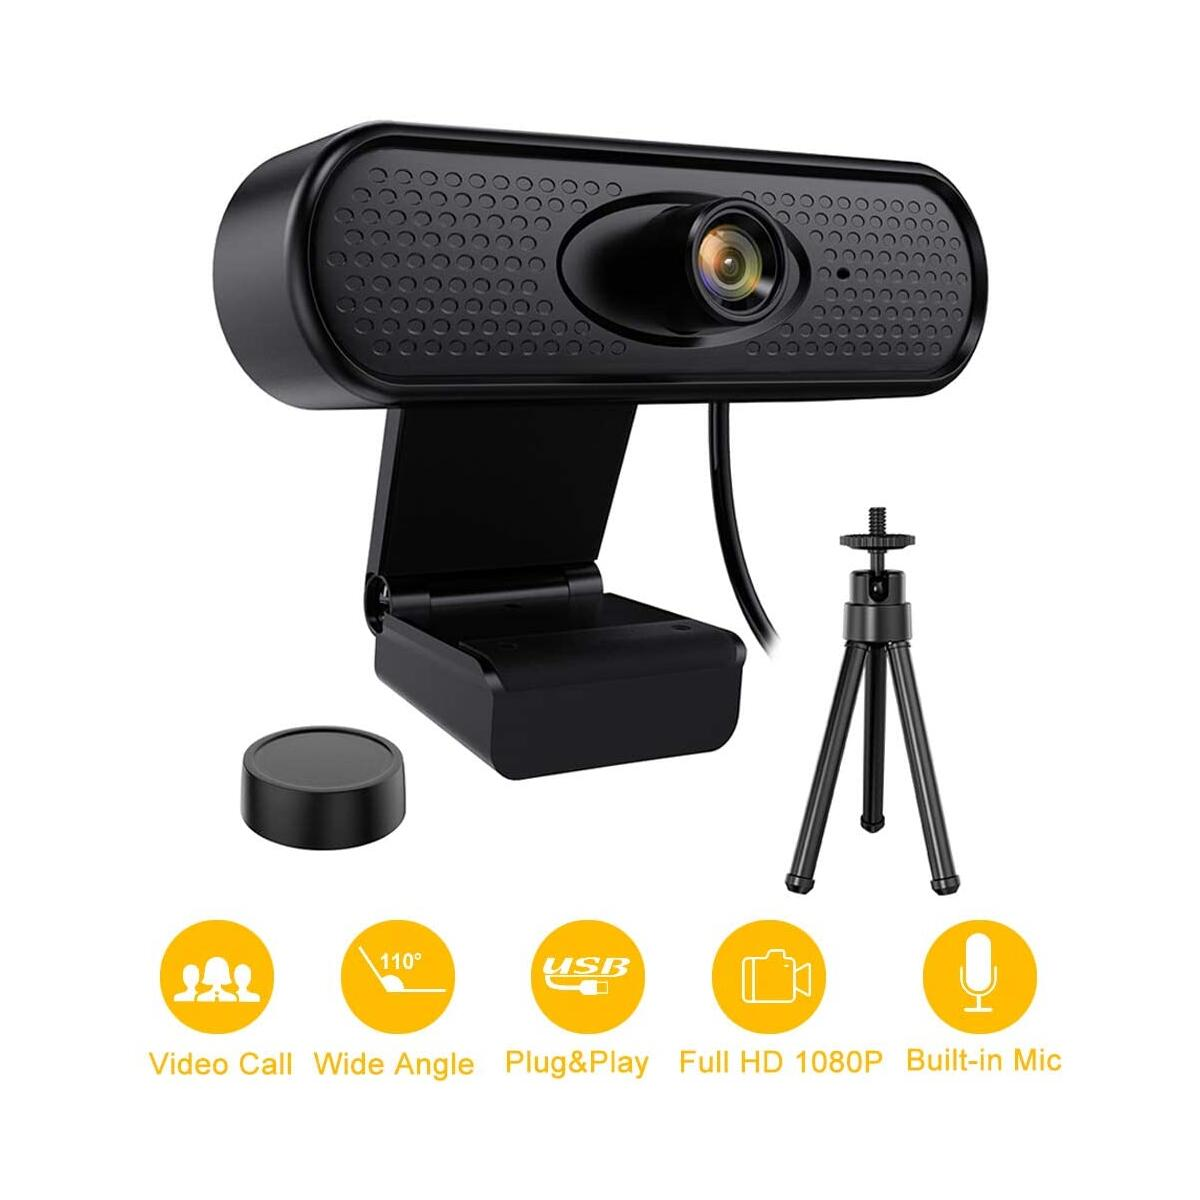 Webcam - iYAFFA 1080P HD USB Web Camera with Microphone, Tripod Streaming Webcam with 110-Degree Wide View PC Camera Angle for Video Calling, Recording, Conferencing, Gaming